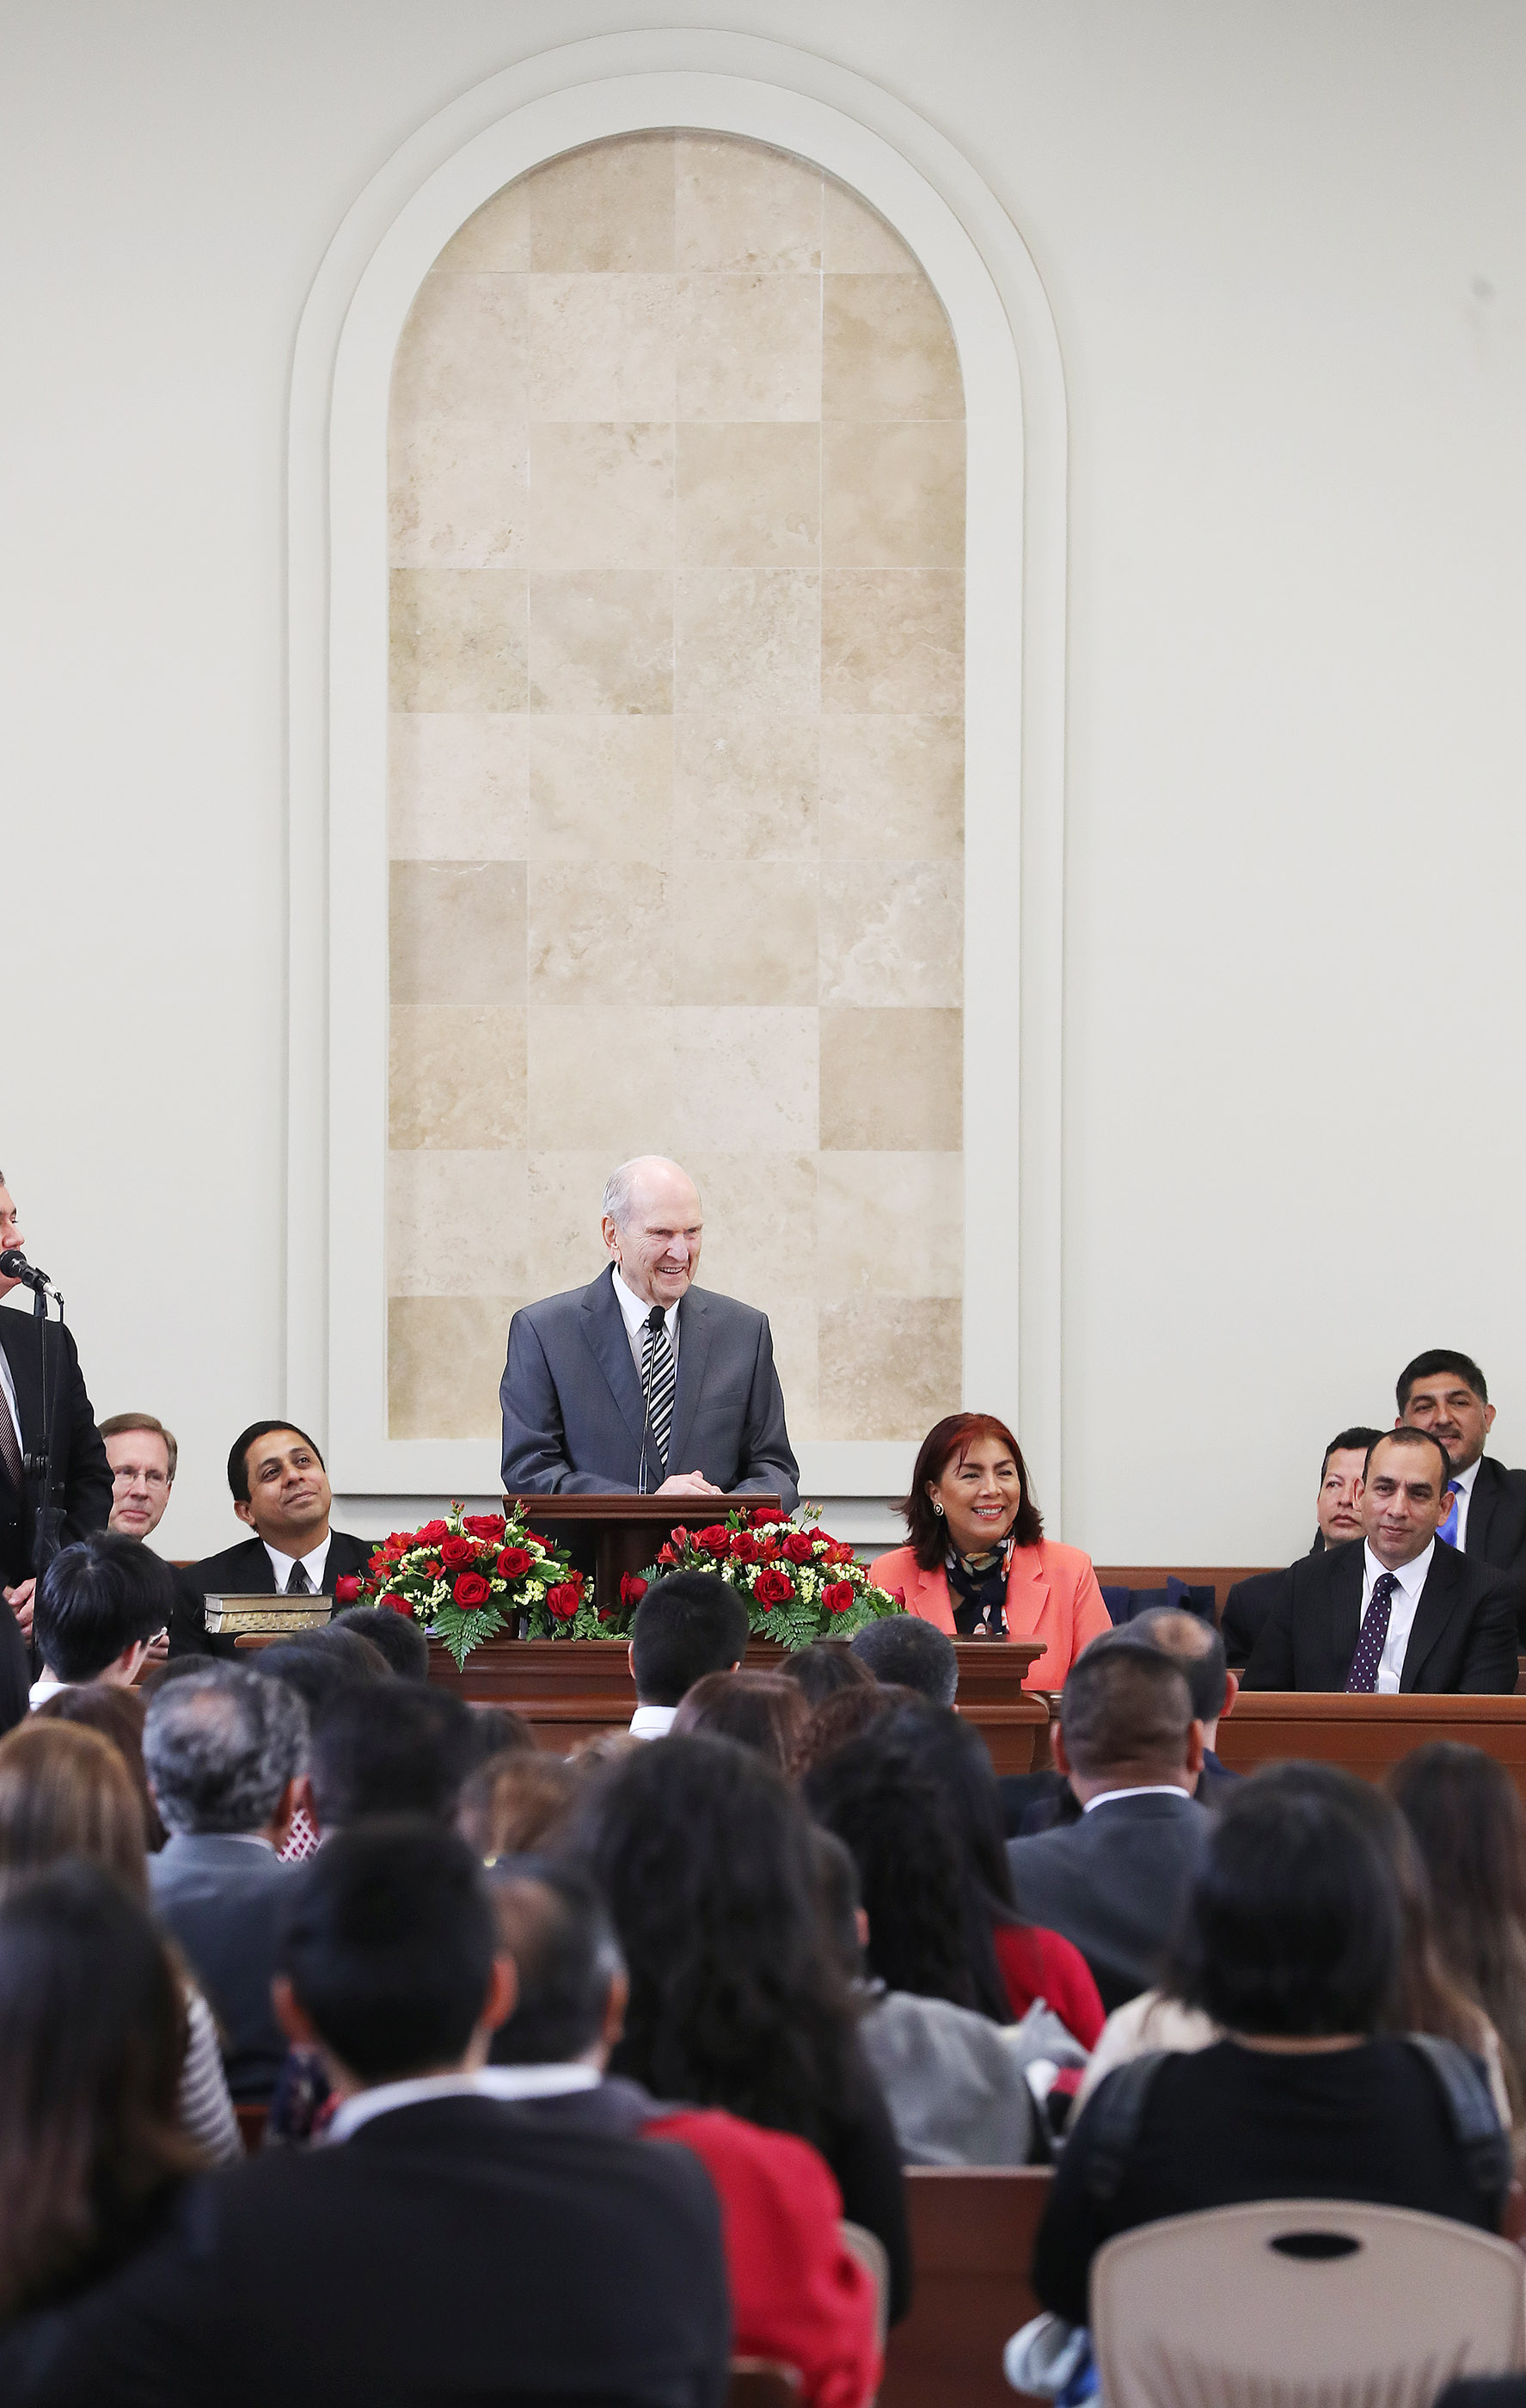 President Russell M. Nelson of The Church of Jesus Christ of Latter-day Saints speaks in a ward in Lima, Peru on Oct. 21, 2018.